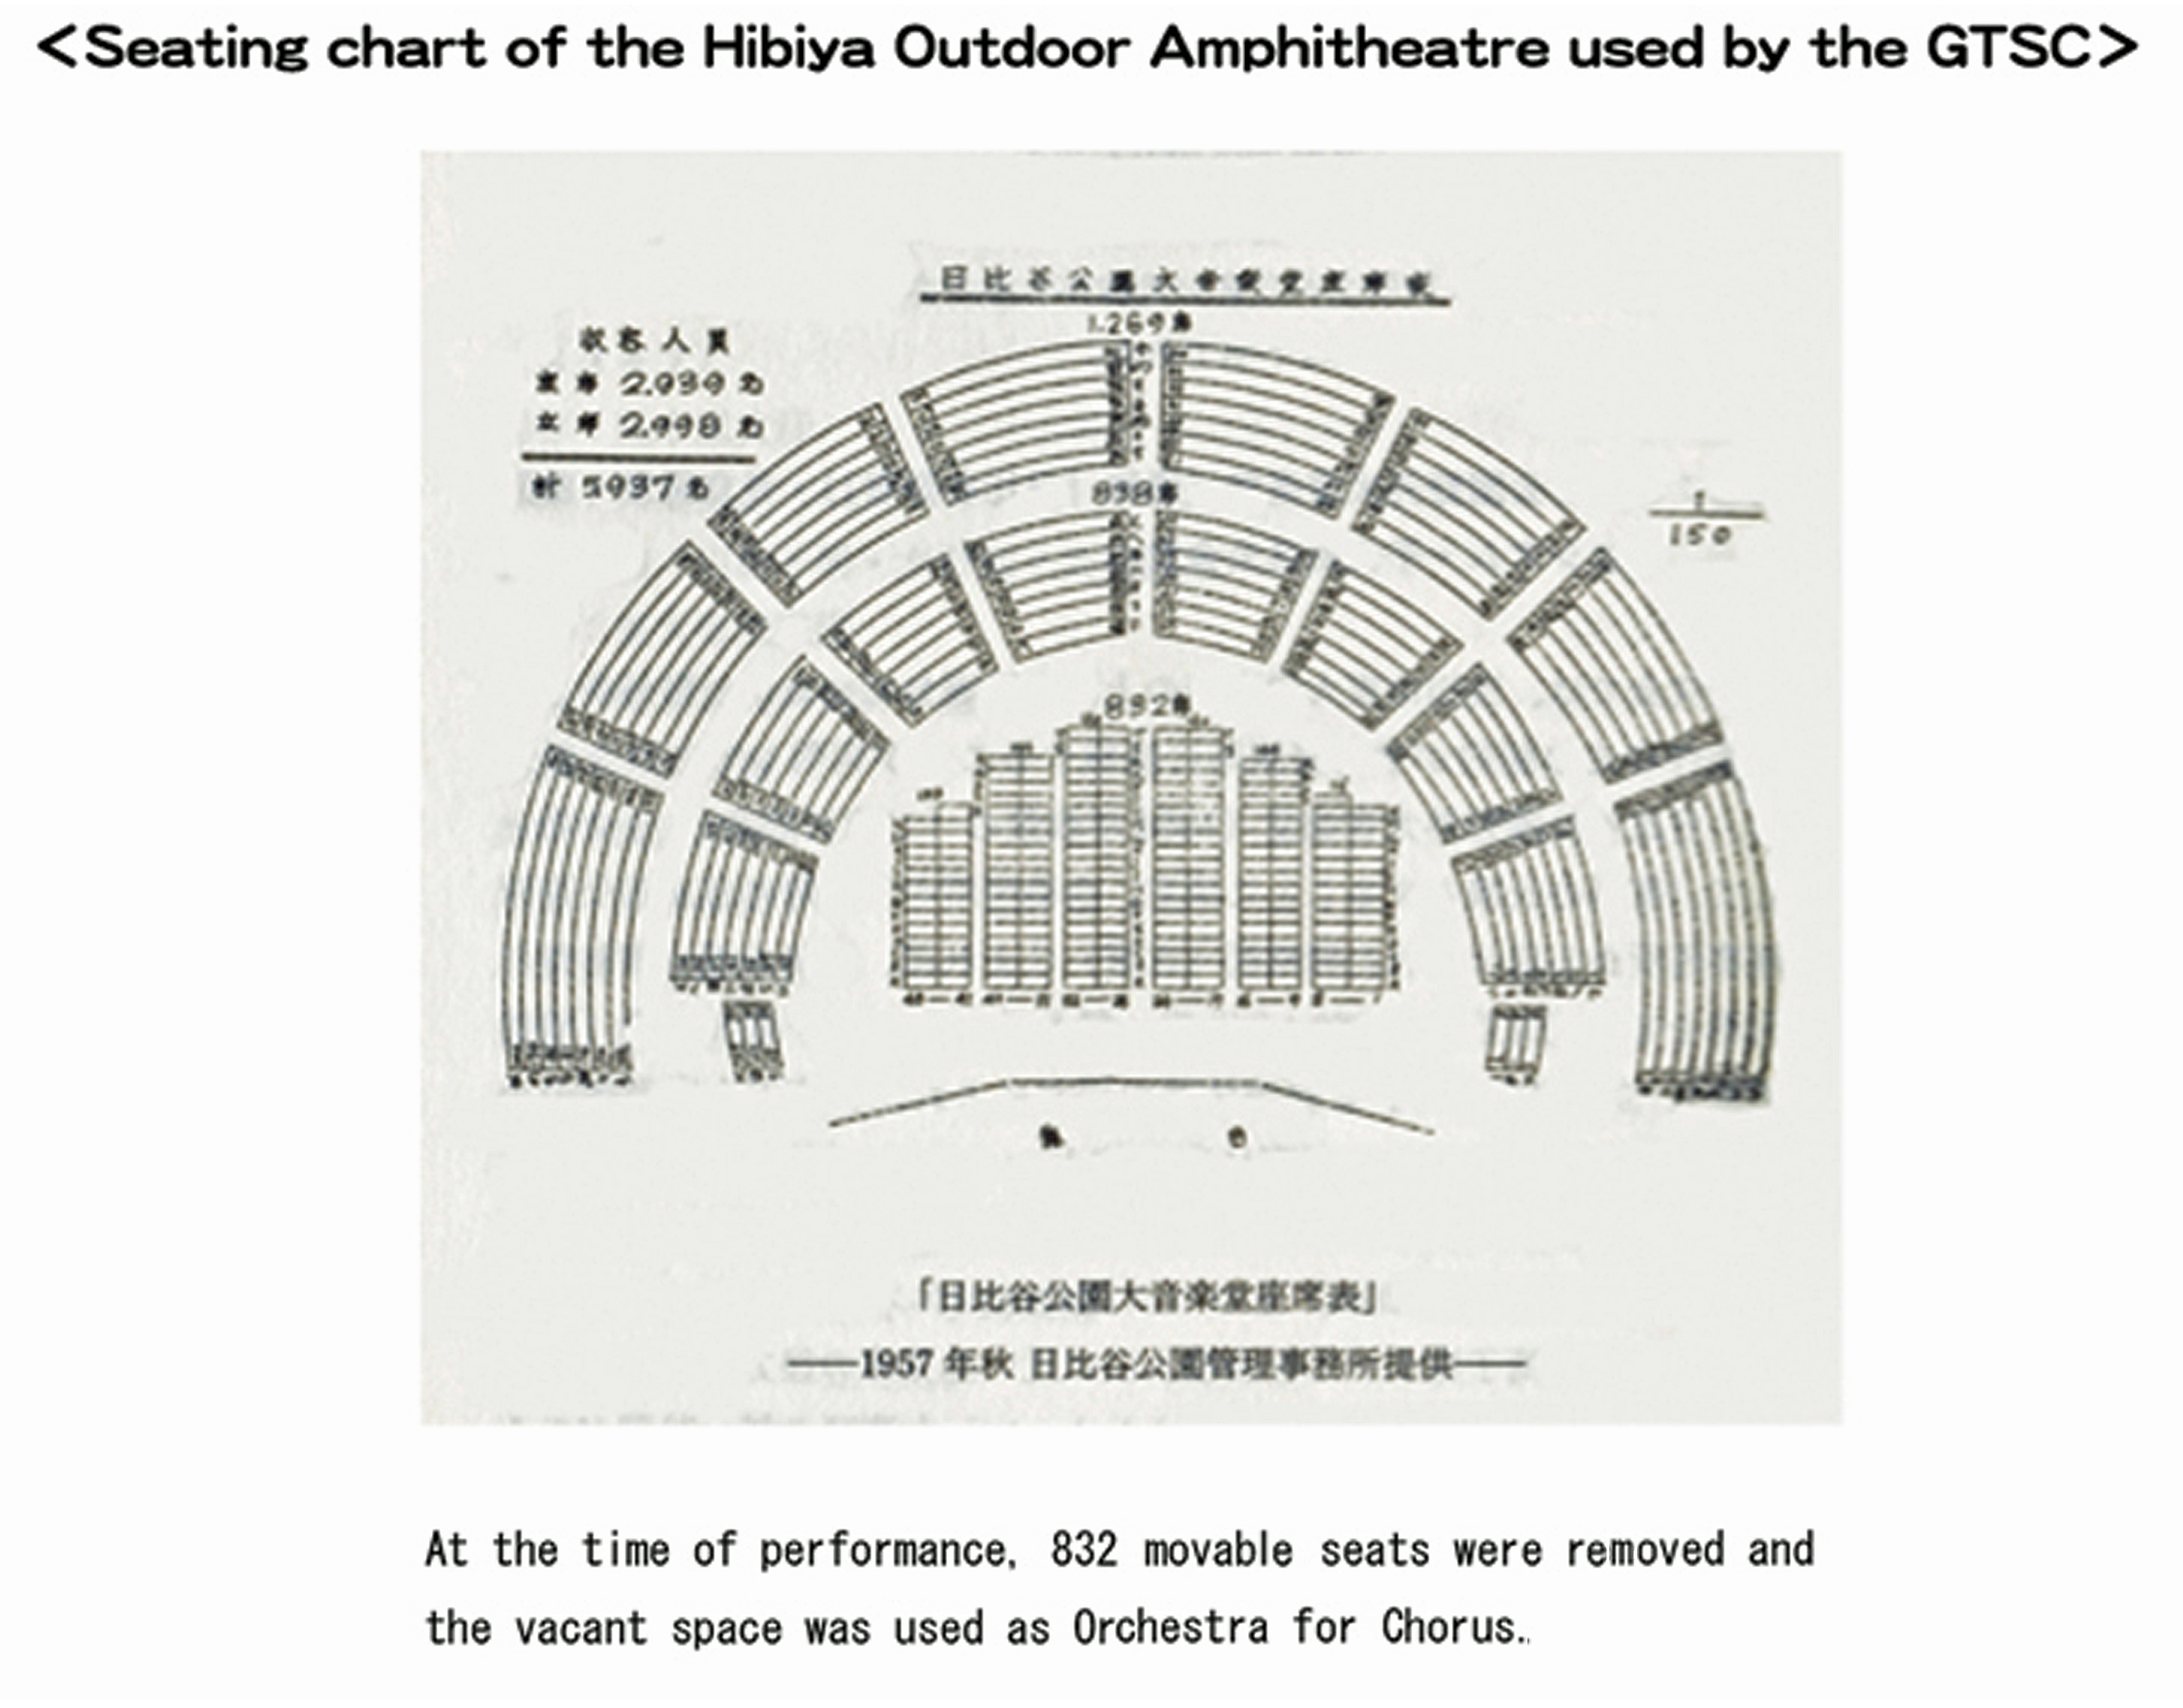 Hibiy outdoor Amphitheater